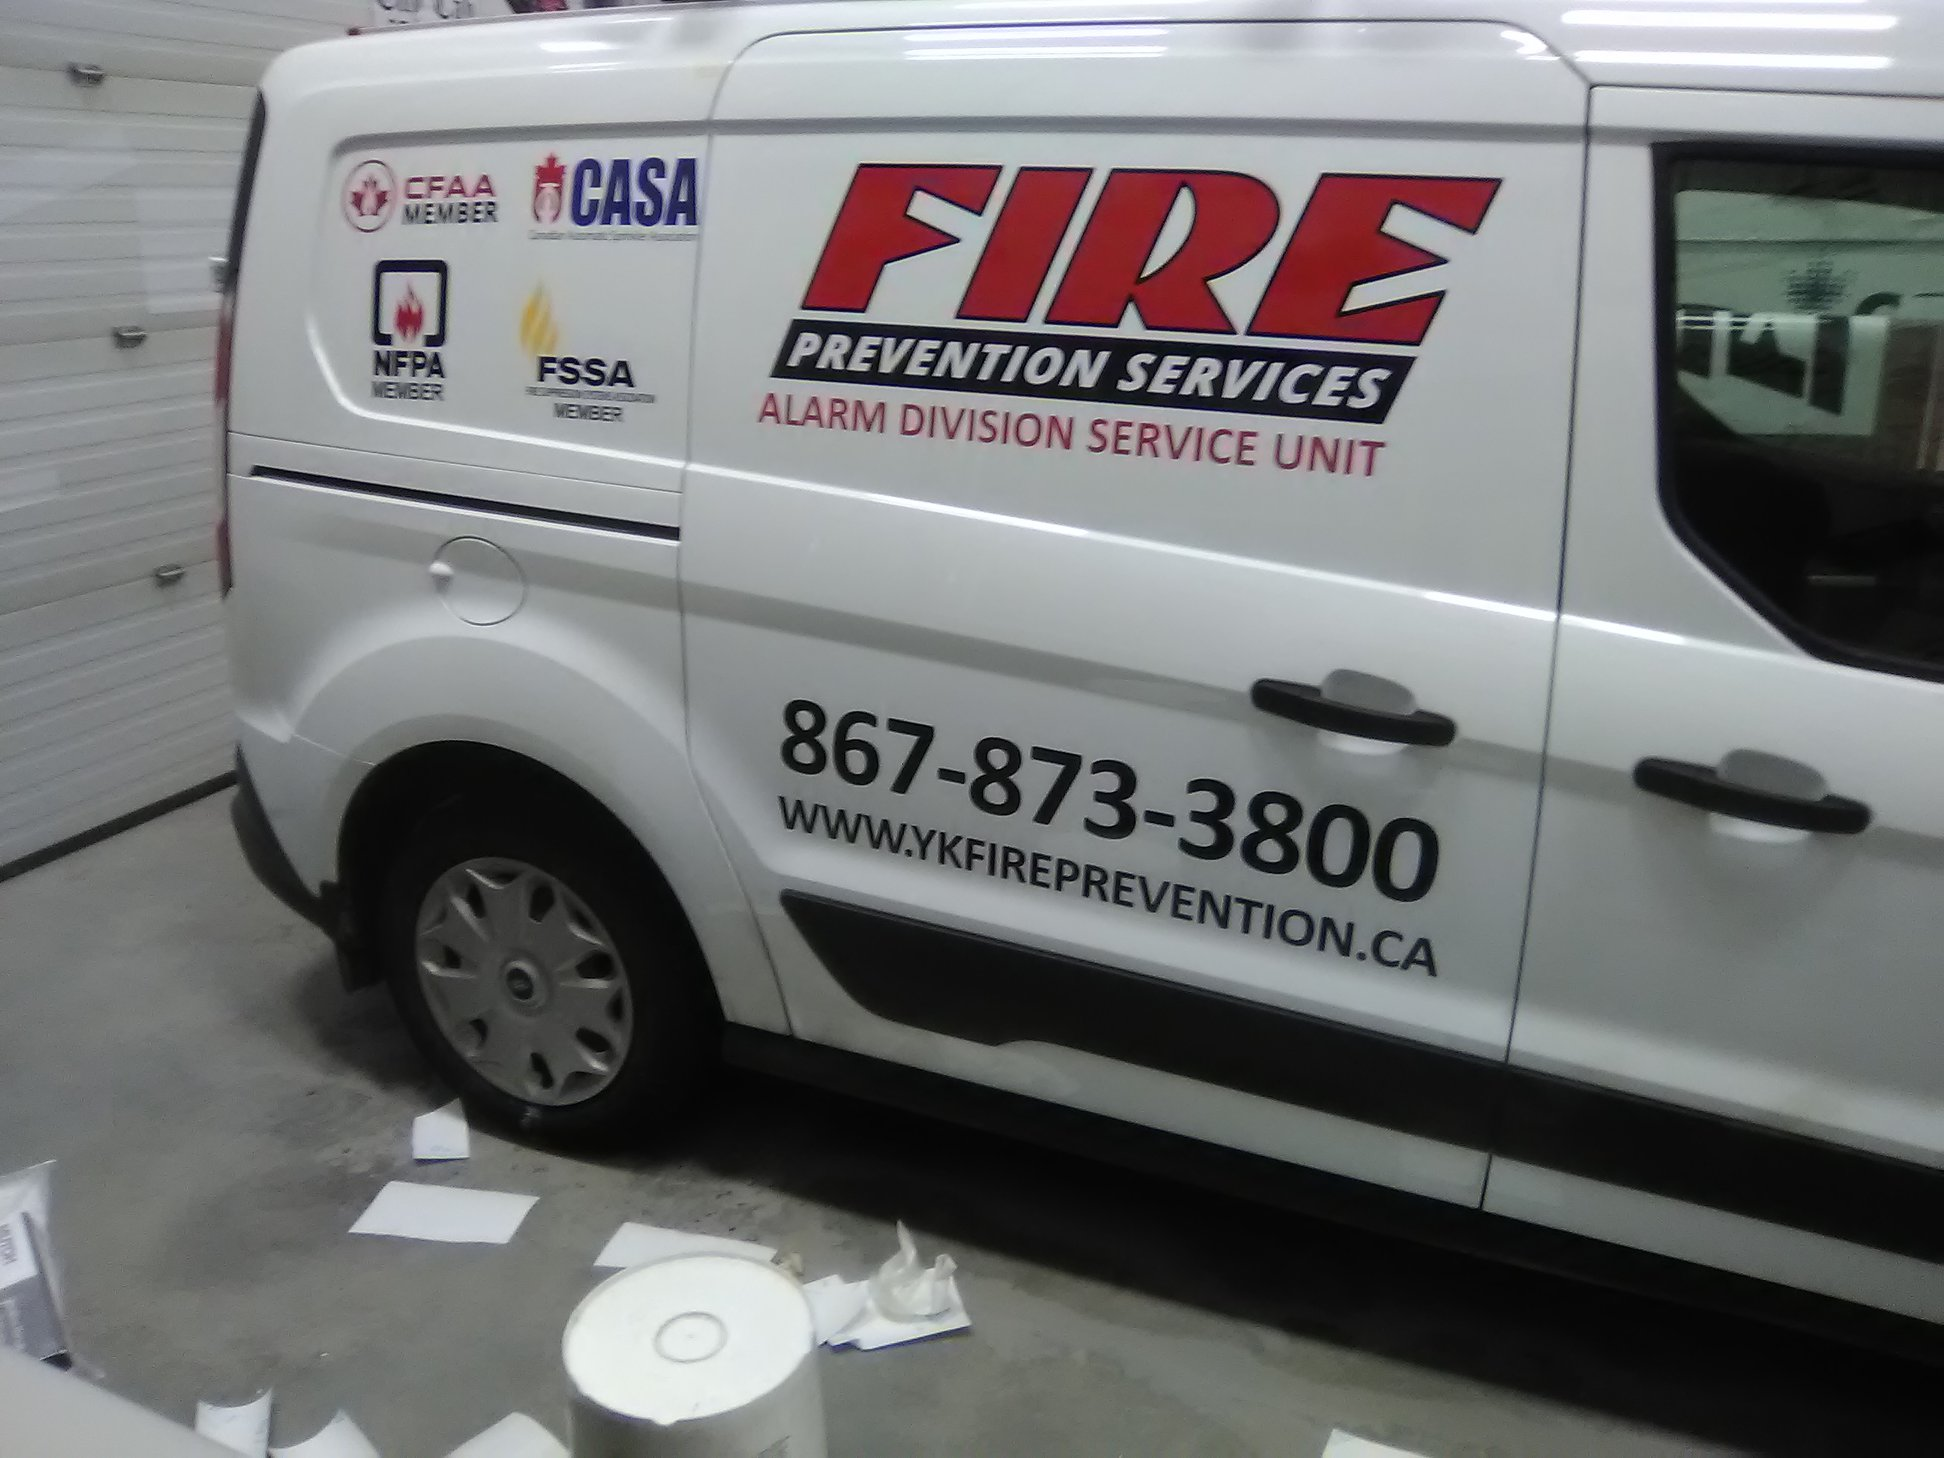 New Fire Prevention Services Fleet Decals